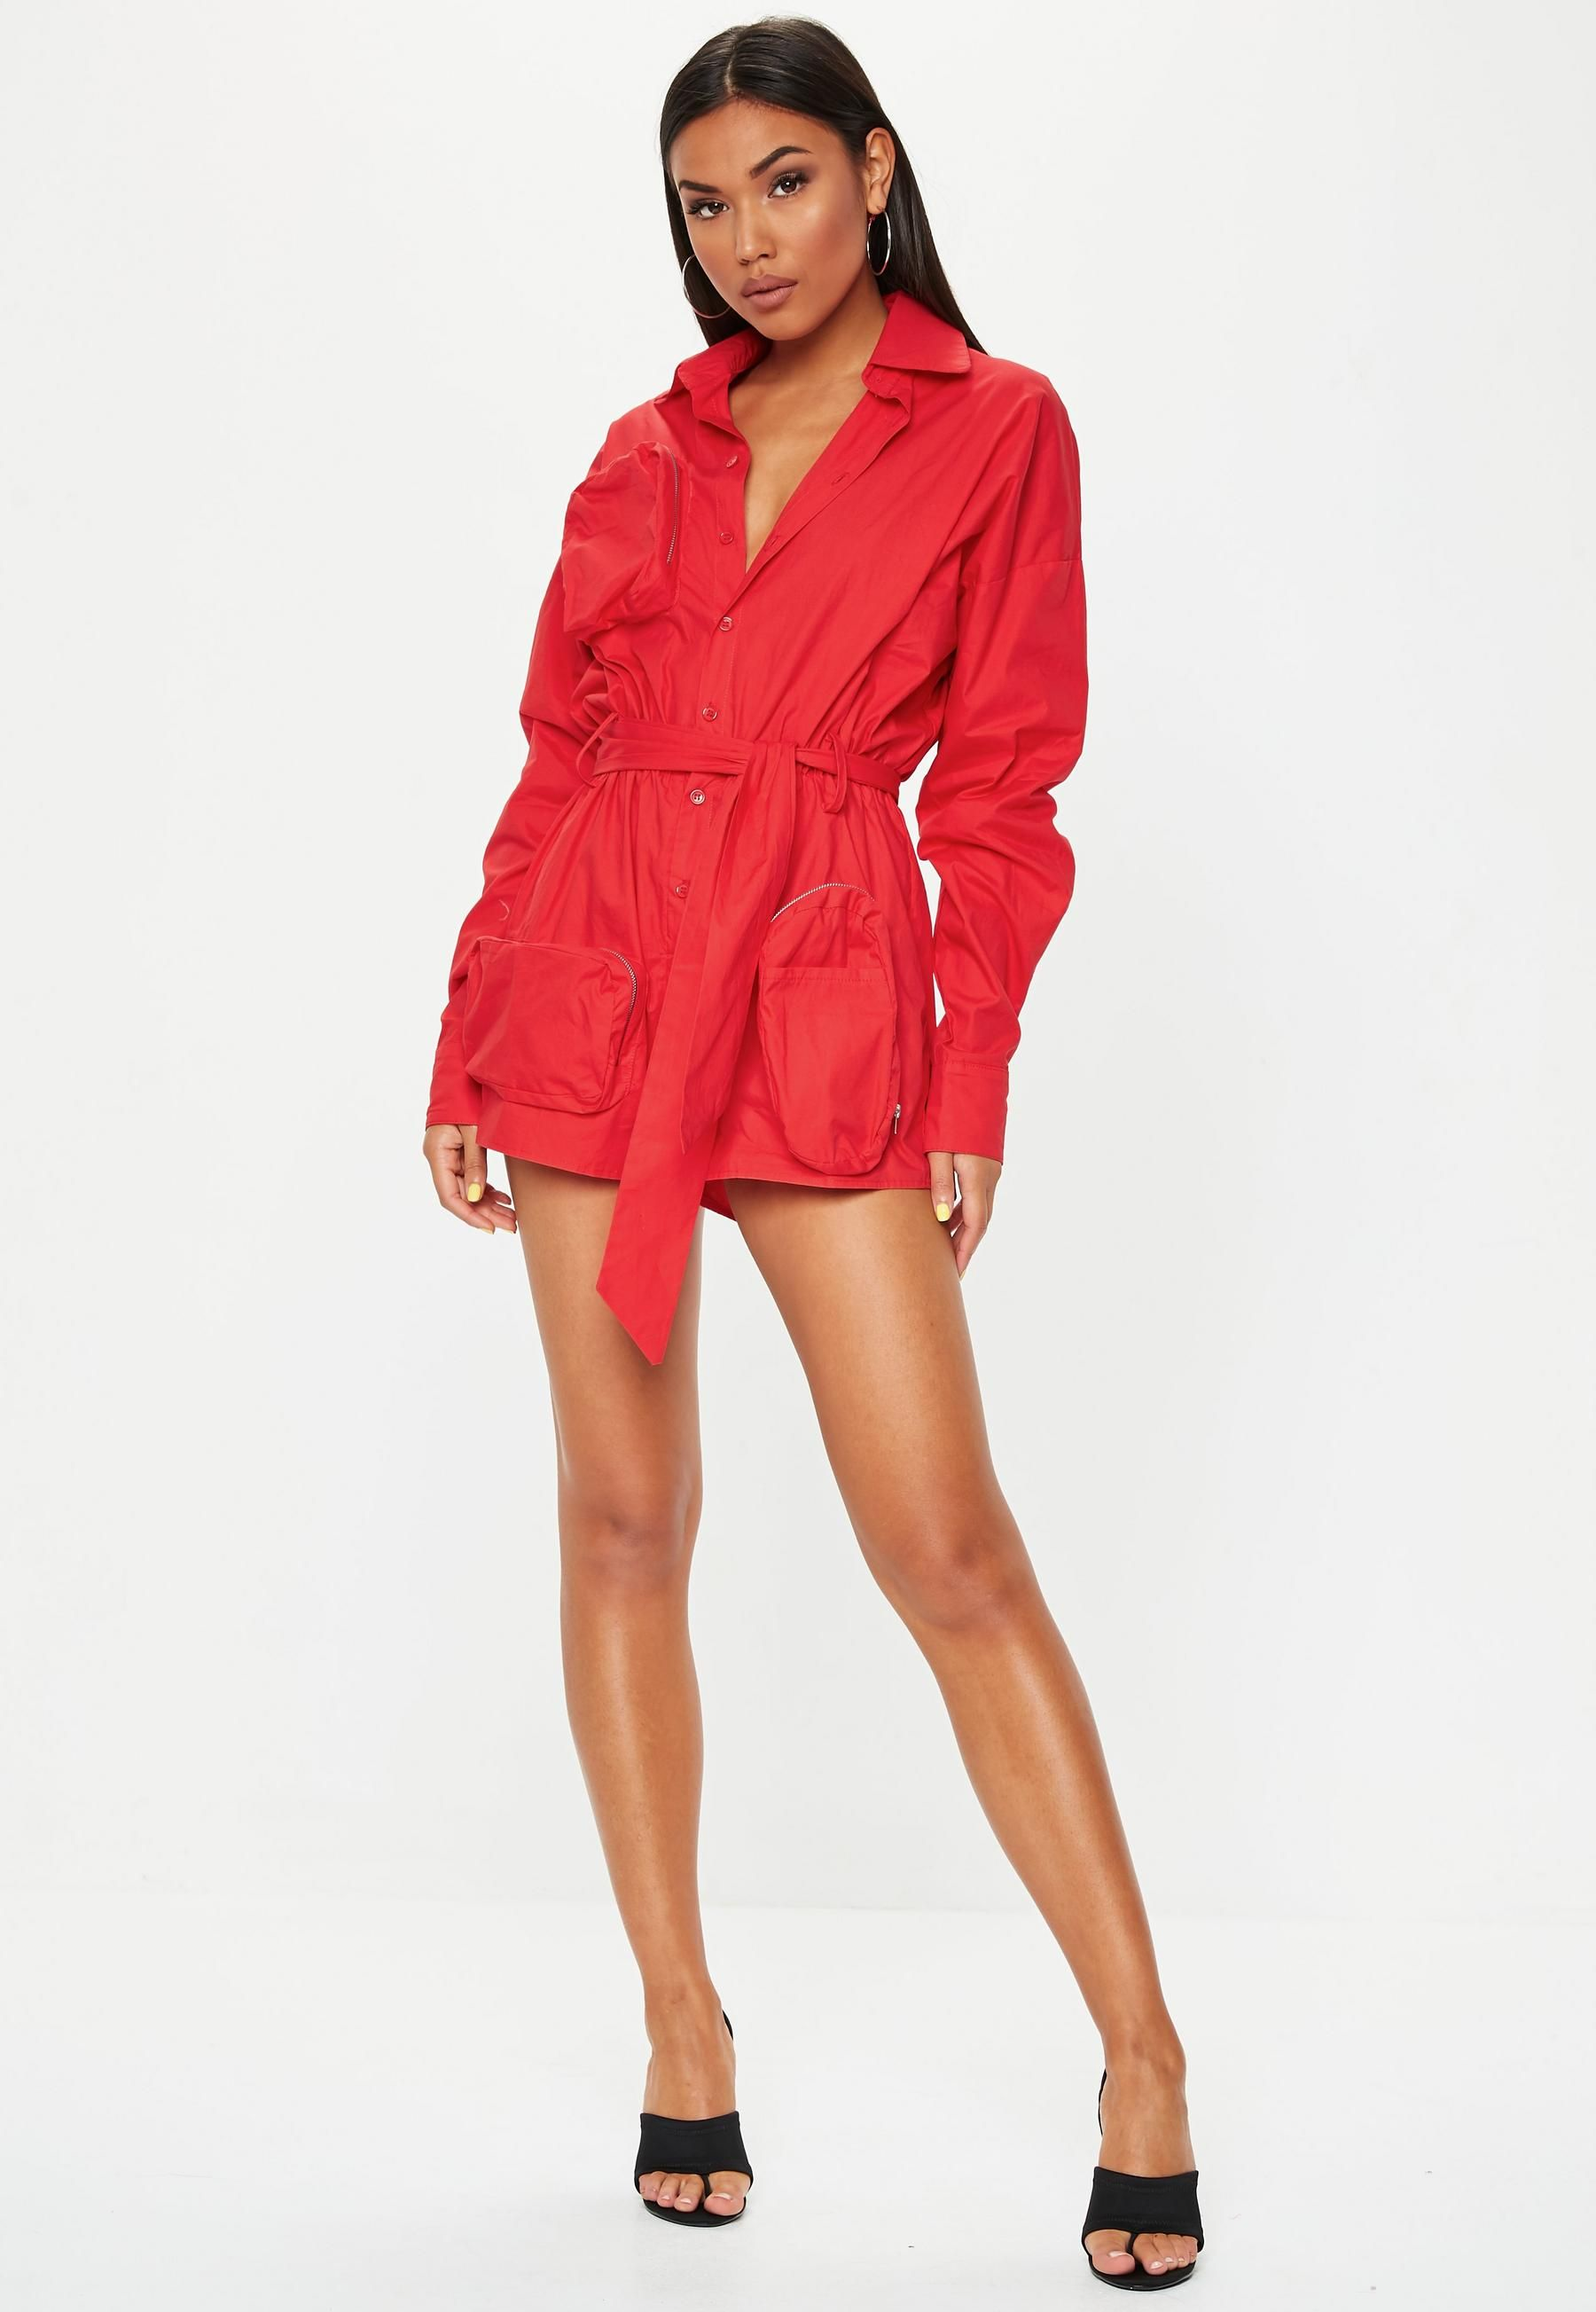 dc5ed1fc2 Red Oversized Cargo Playsuit | Missguided Australia | Ruby Biond ...